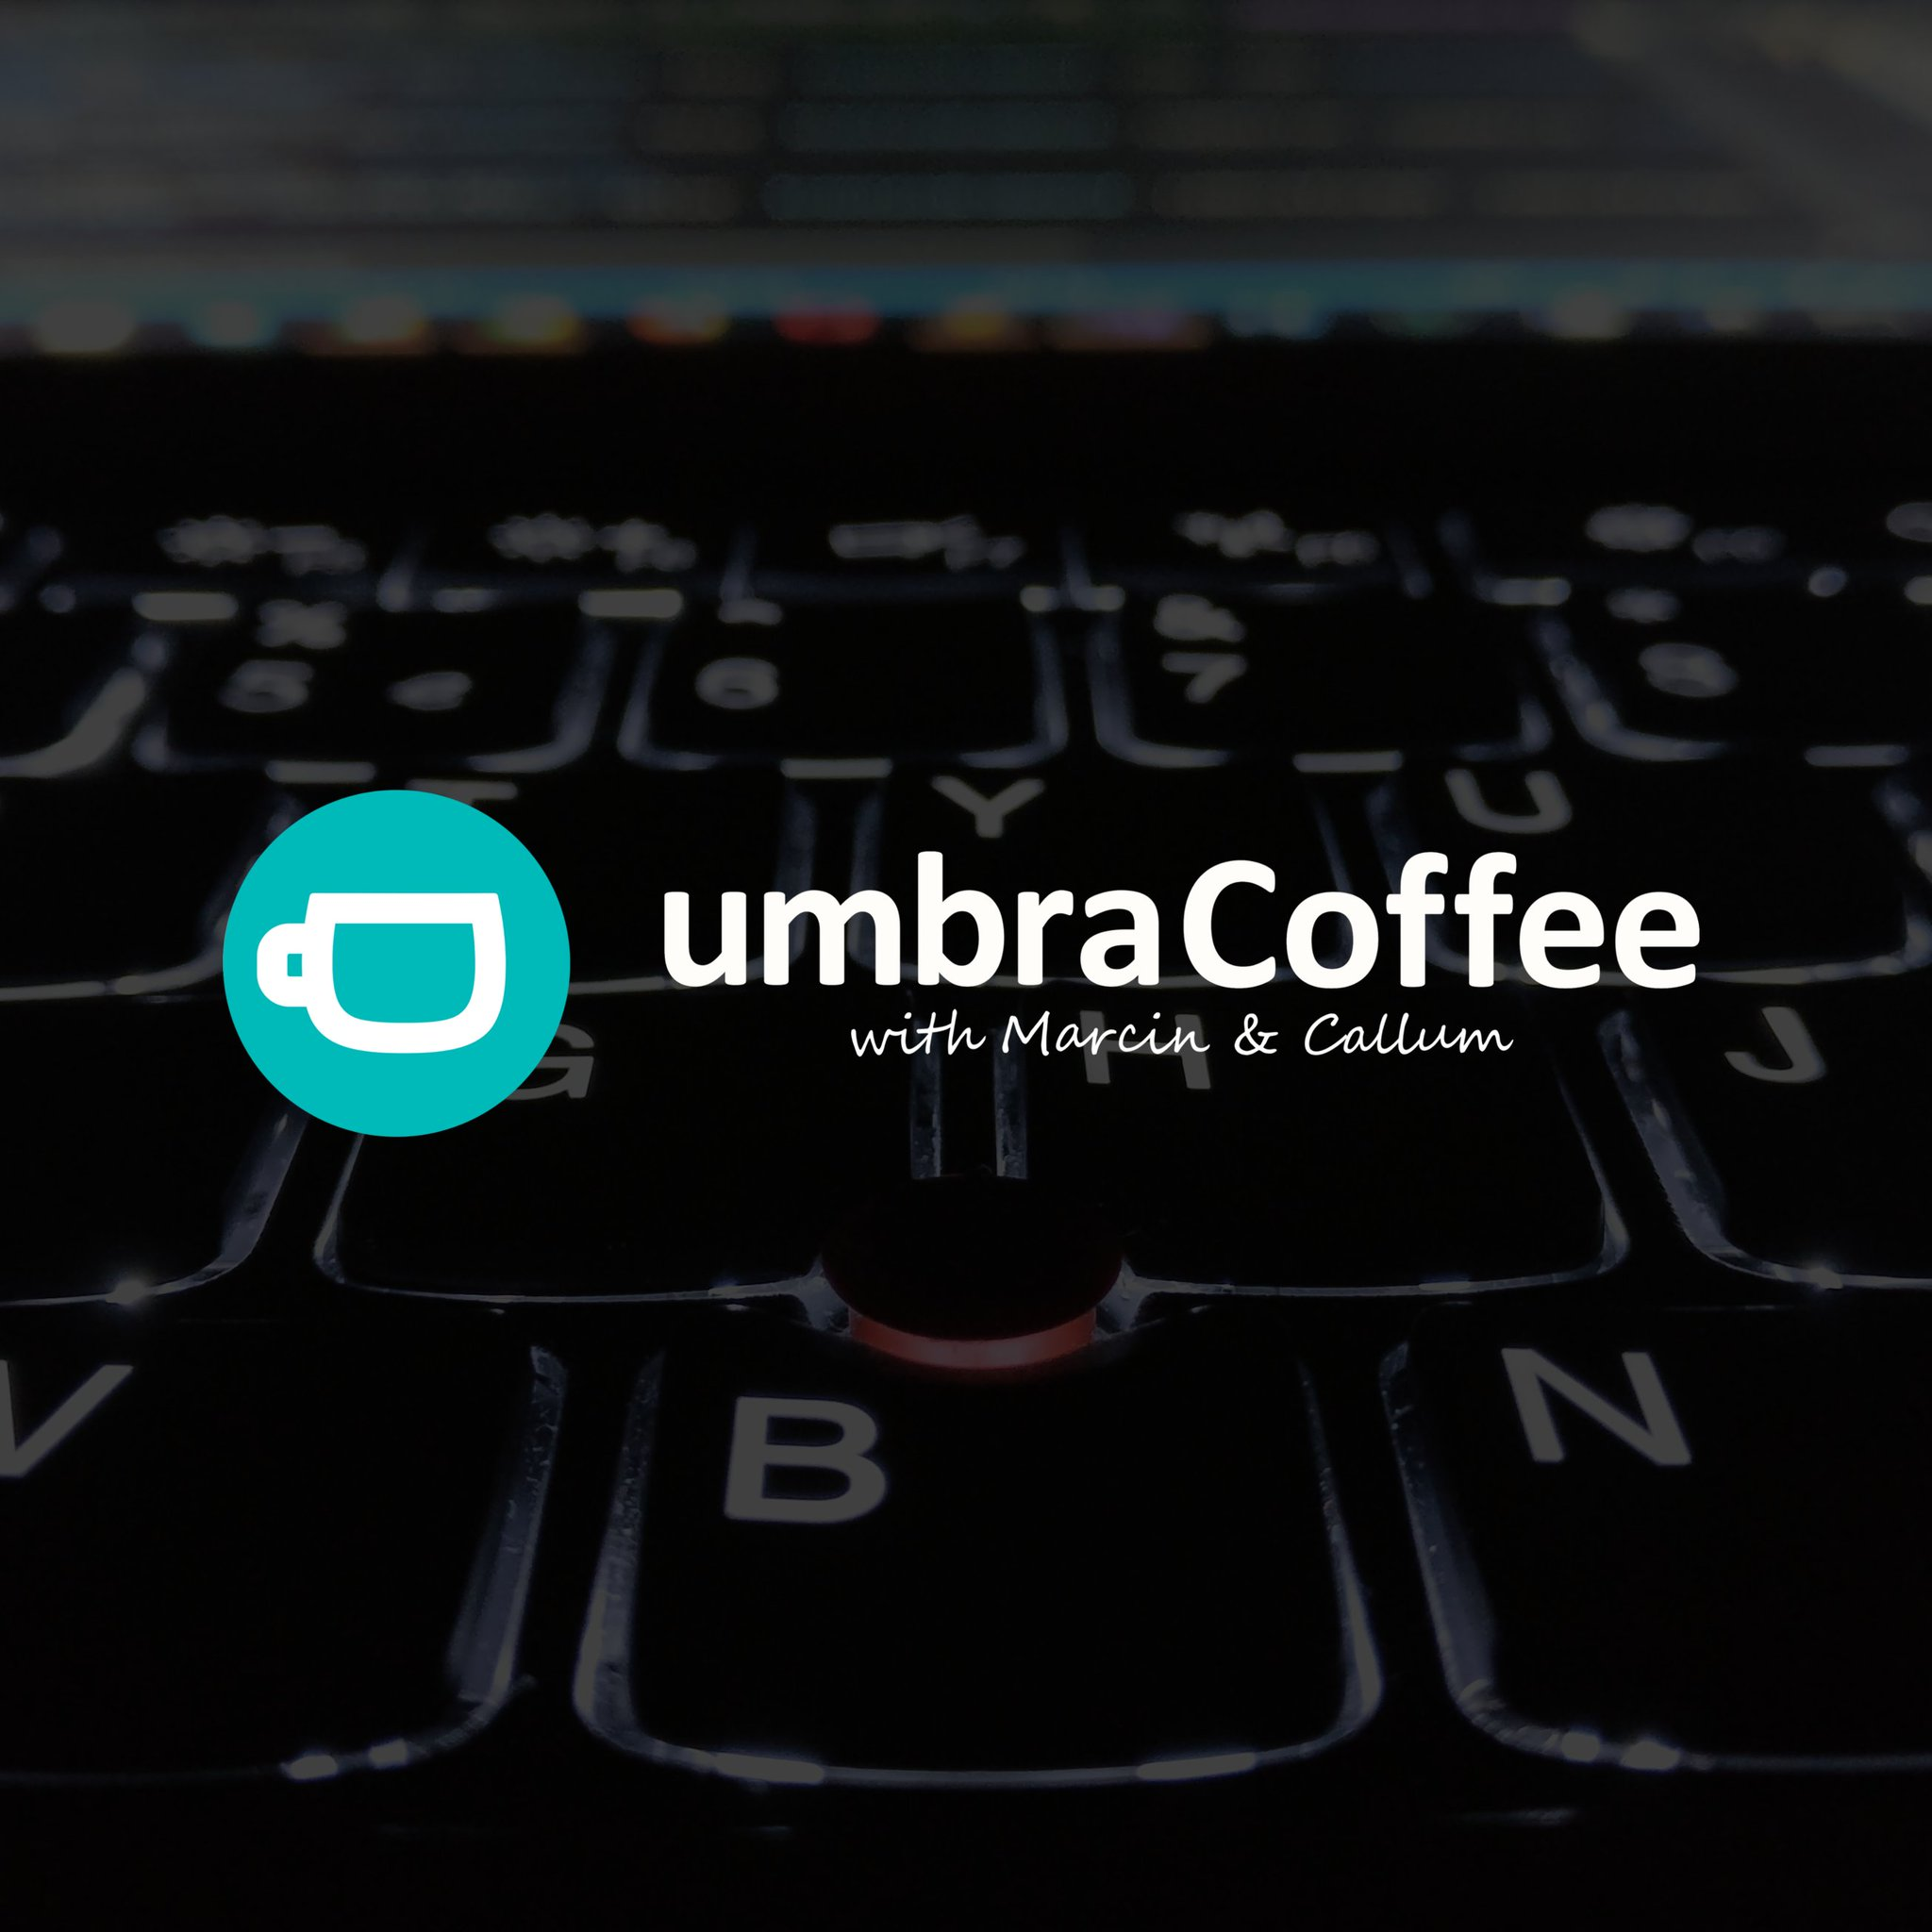 umbraCoffee